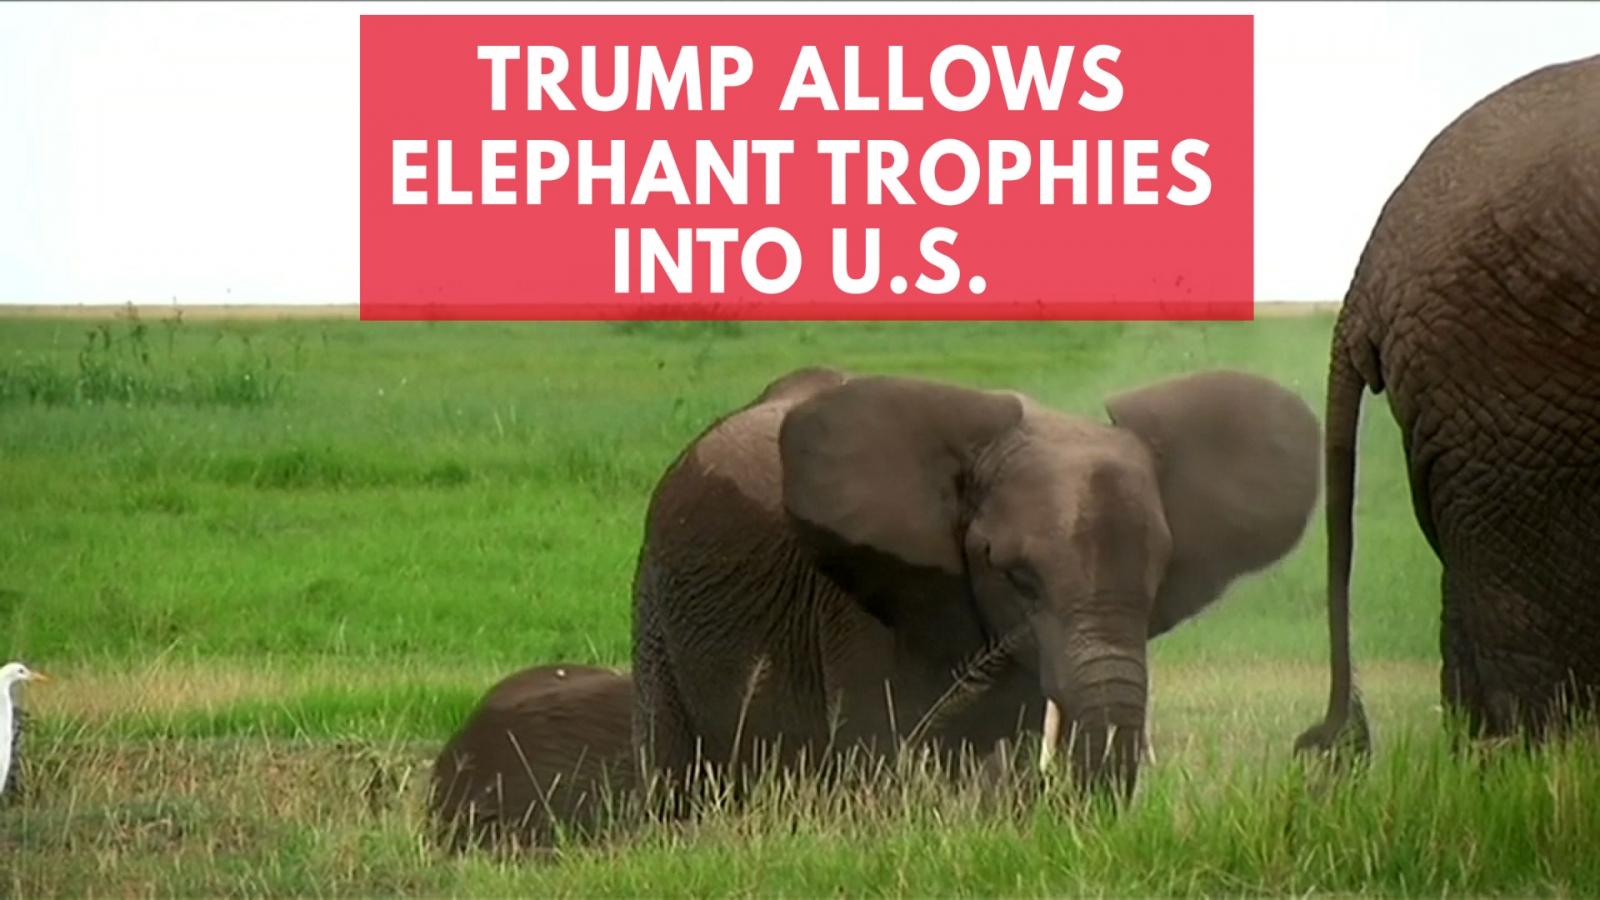 PETA releases footage of elephant killer to pressure passage of bill against trophy hunting